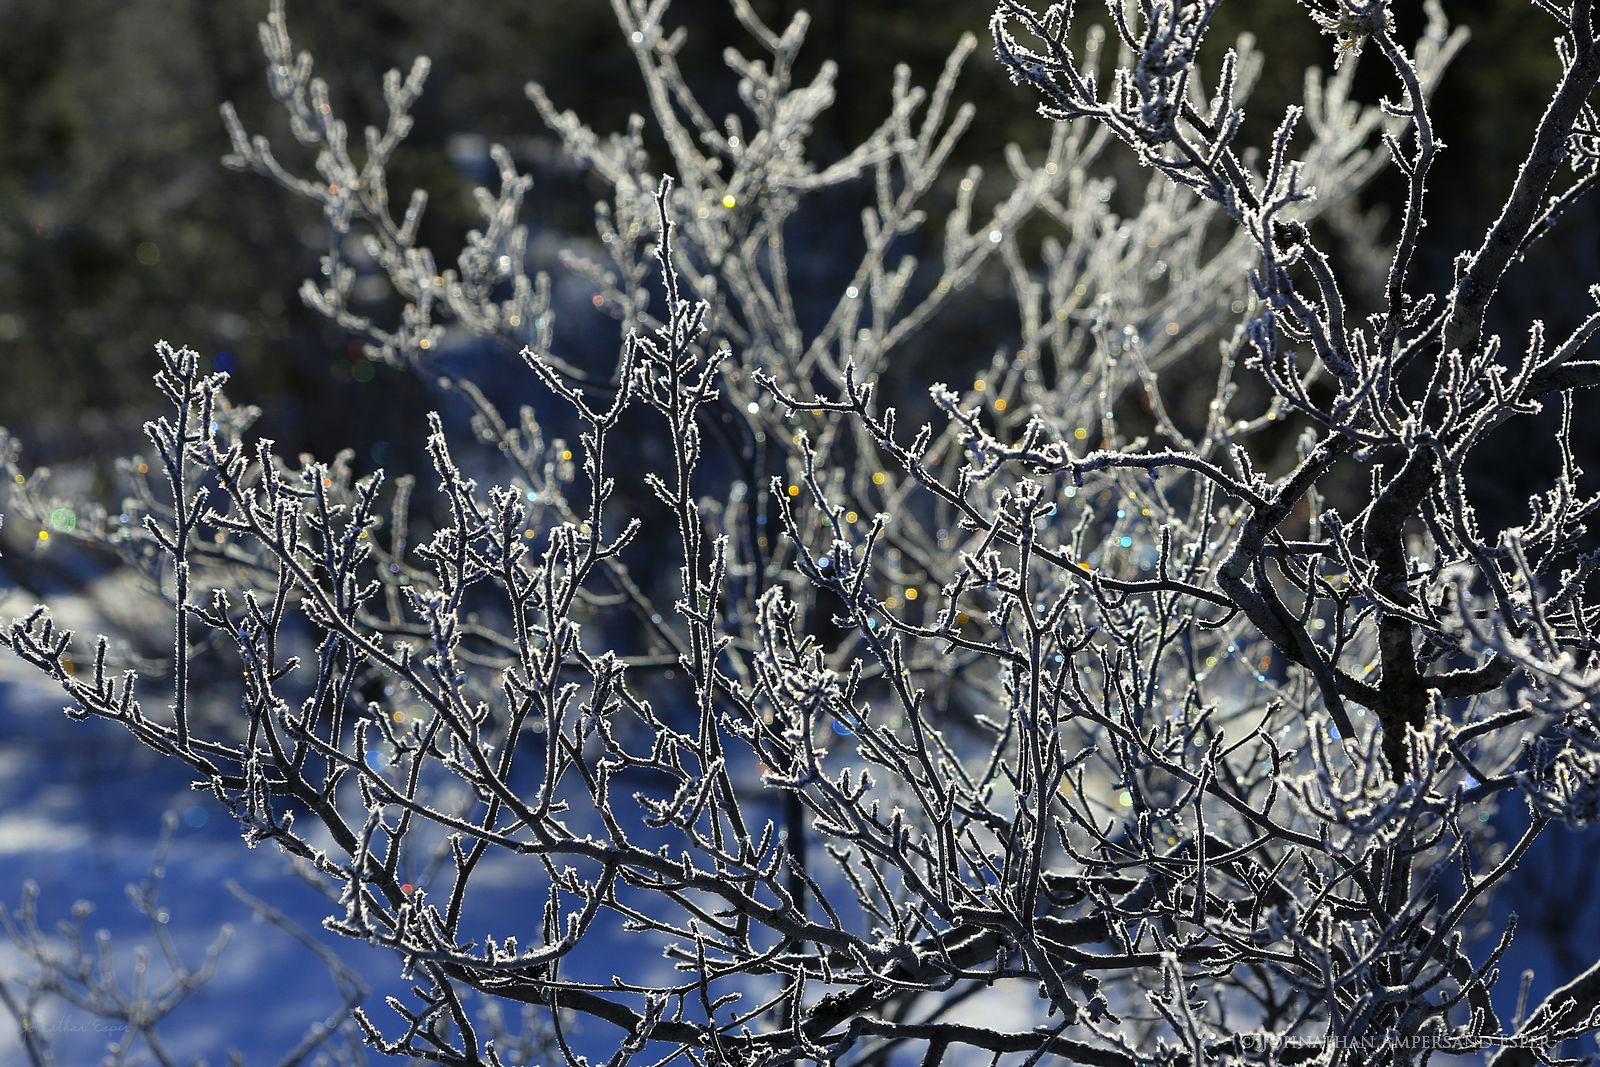 South Pond,South Pond Inlet,winter,ice crystals,sparkling,sparkling ice crystals,bush,